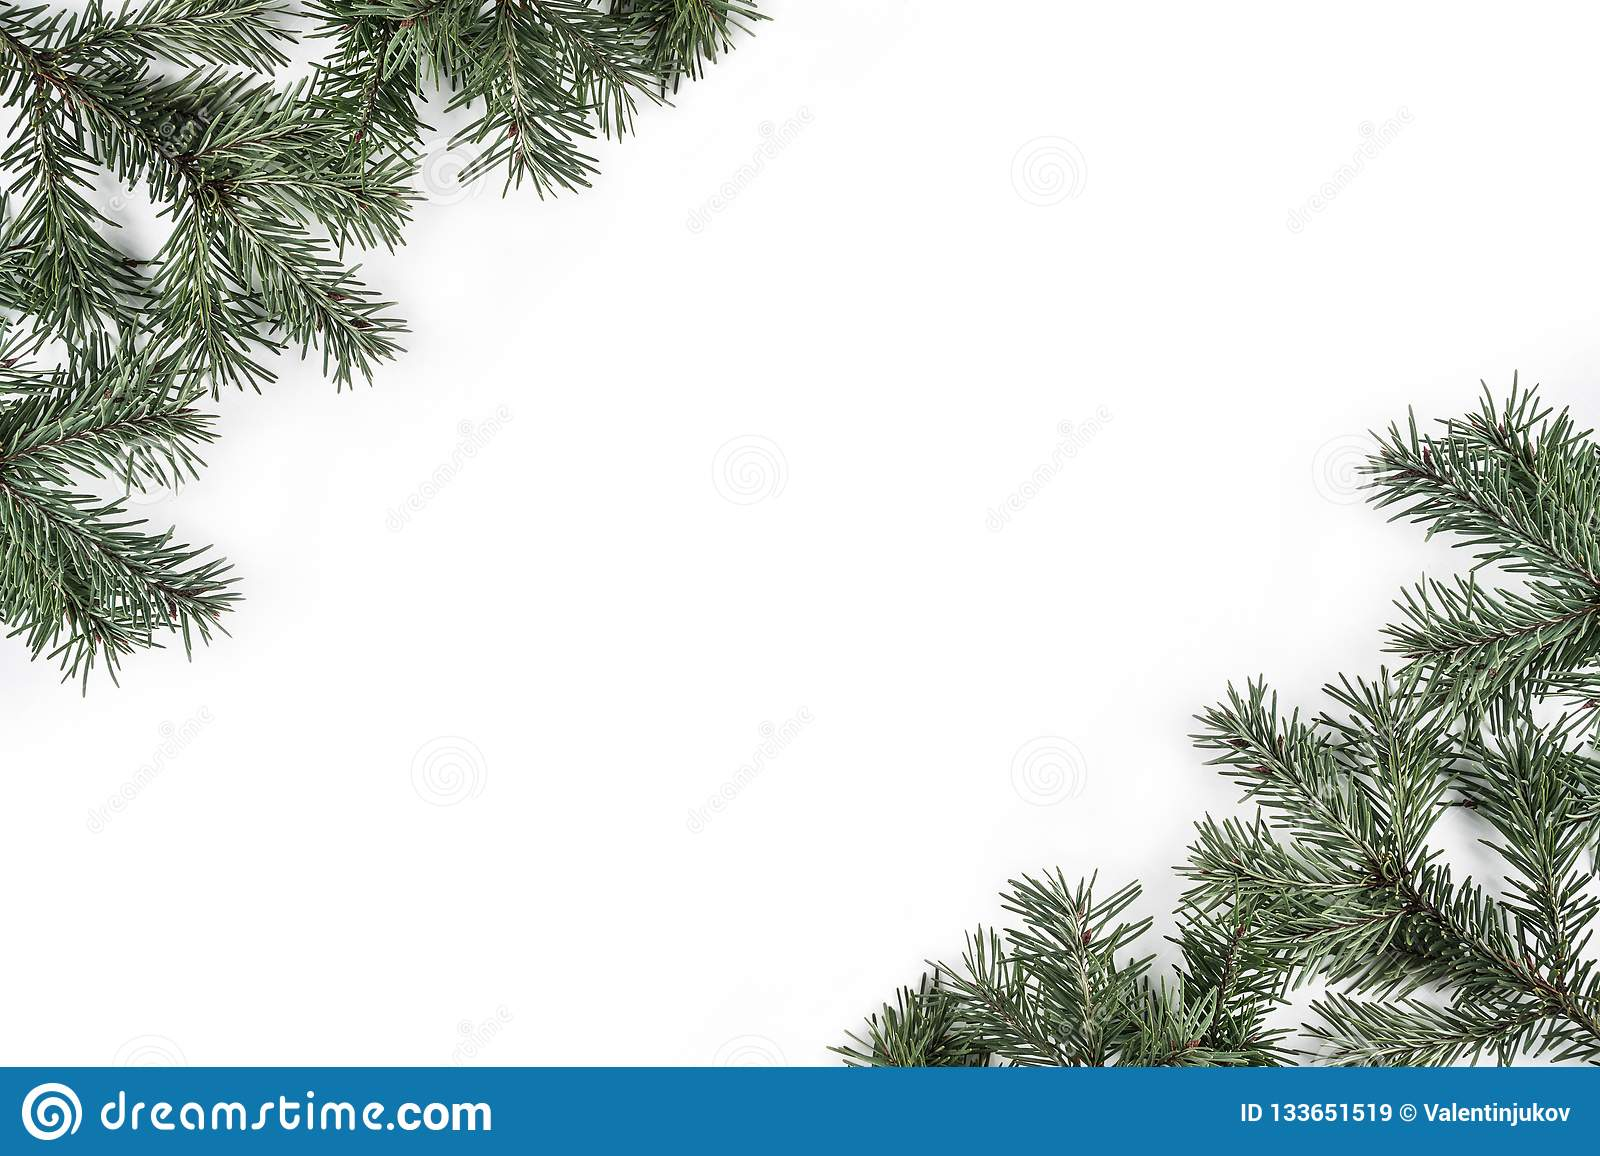 Creative frame made of Christmas Fir branches on white background. Xmas and Happy New Year theme.